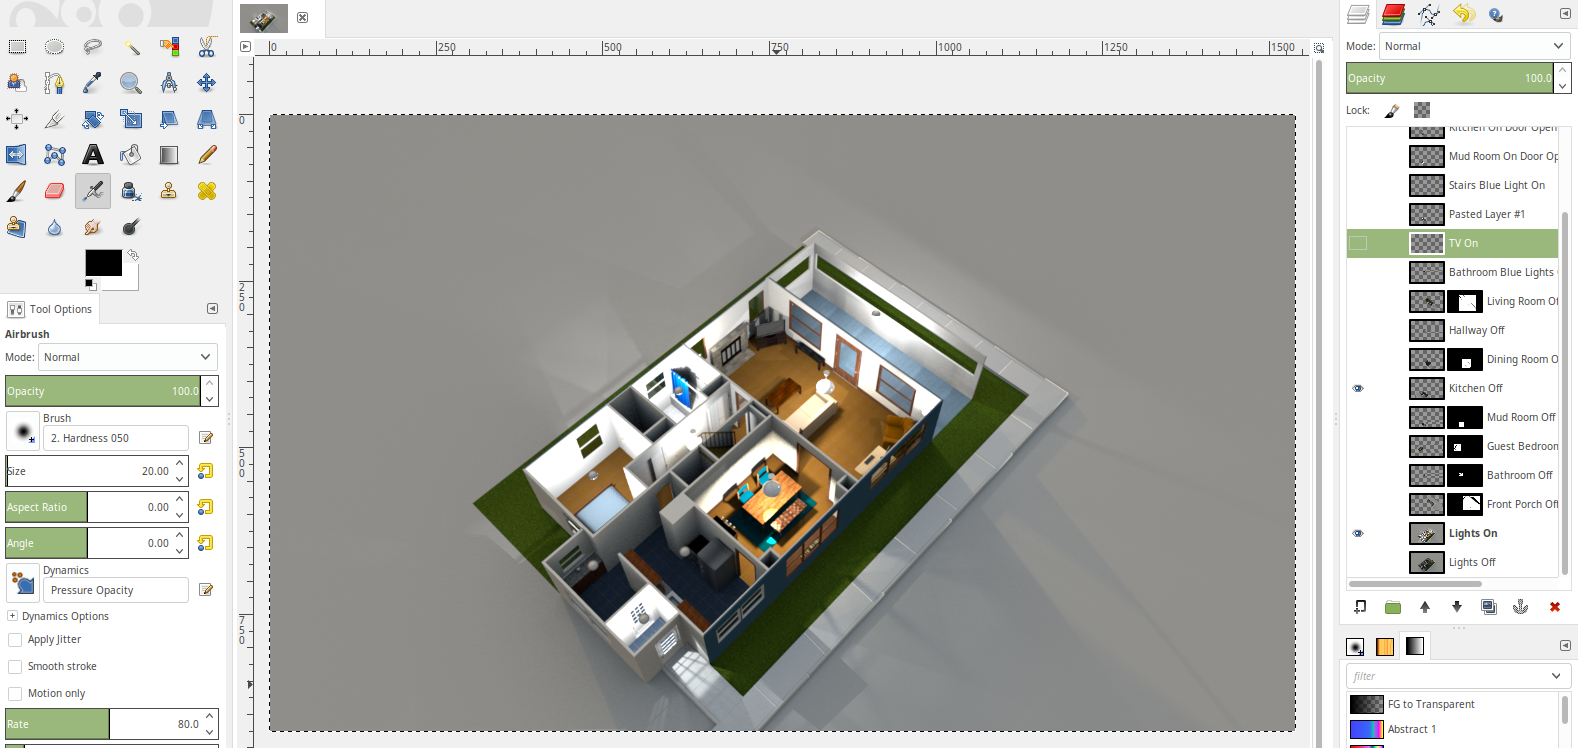 Creating an Interactive 3D Floorplan in Home Assistant - Automate